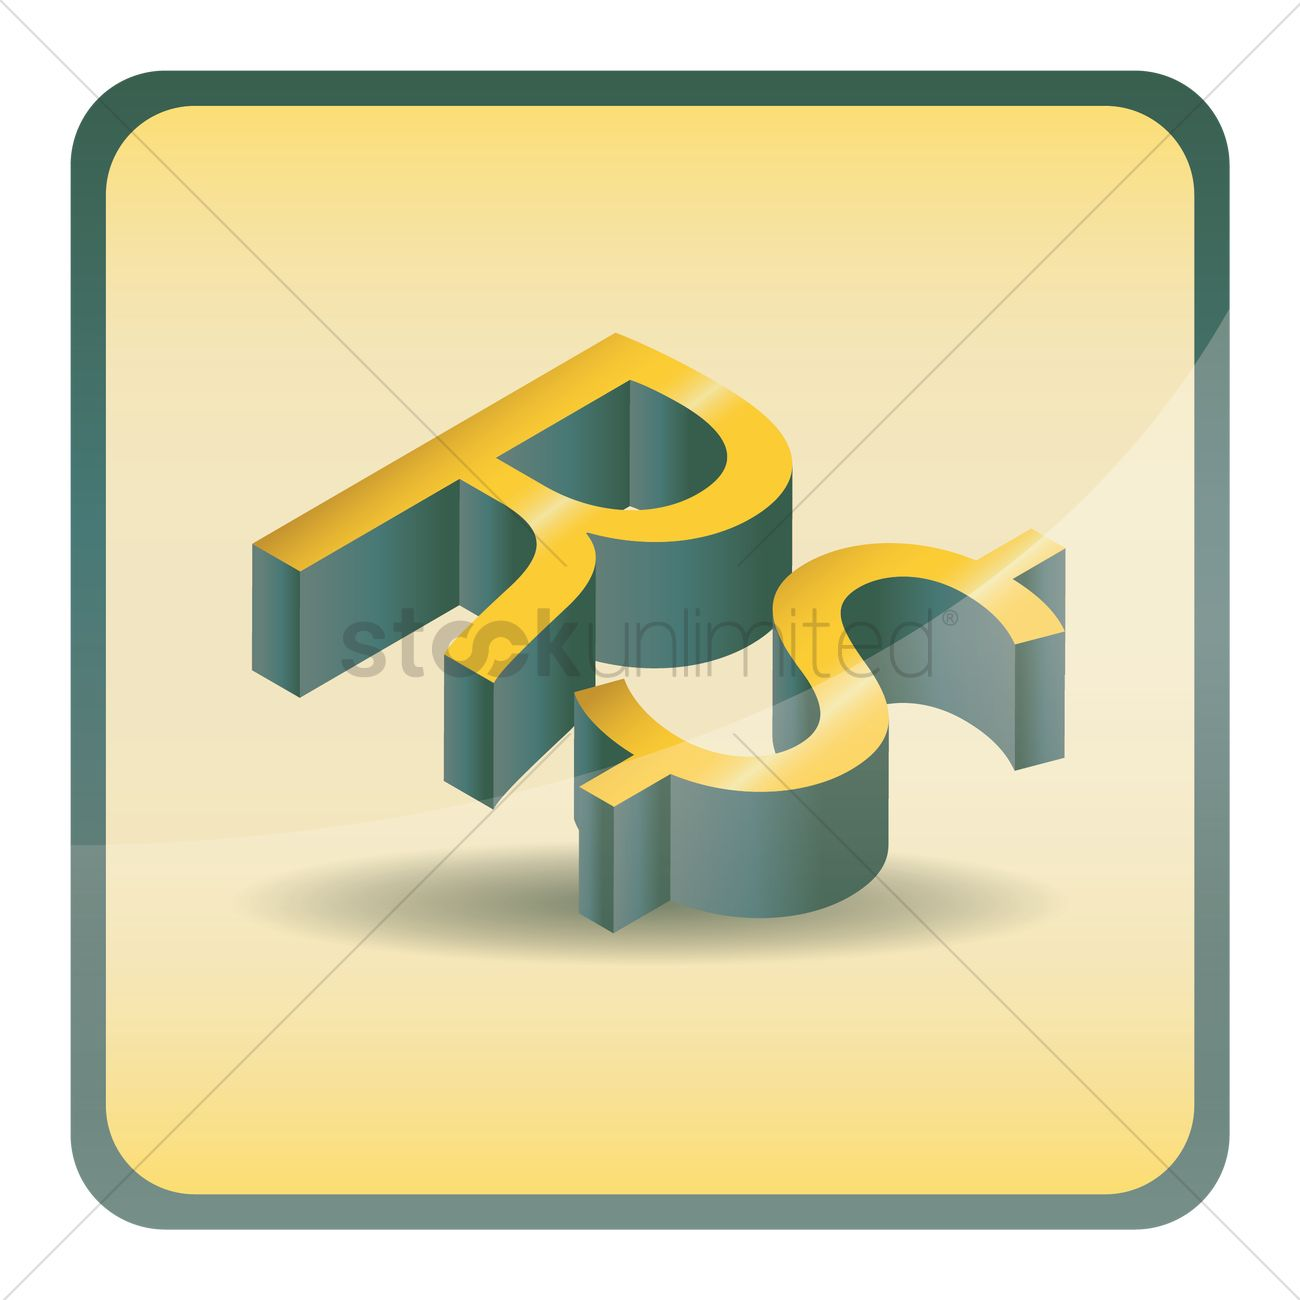 Brazilian Real Currency Vector Image 1631119 Stockunlimited